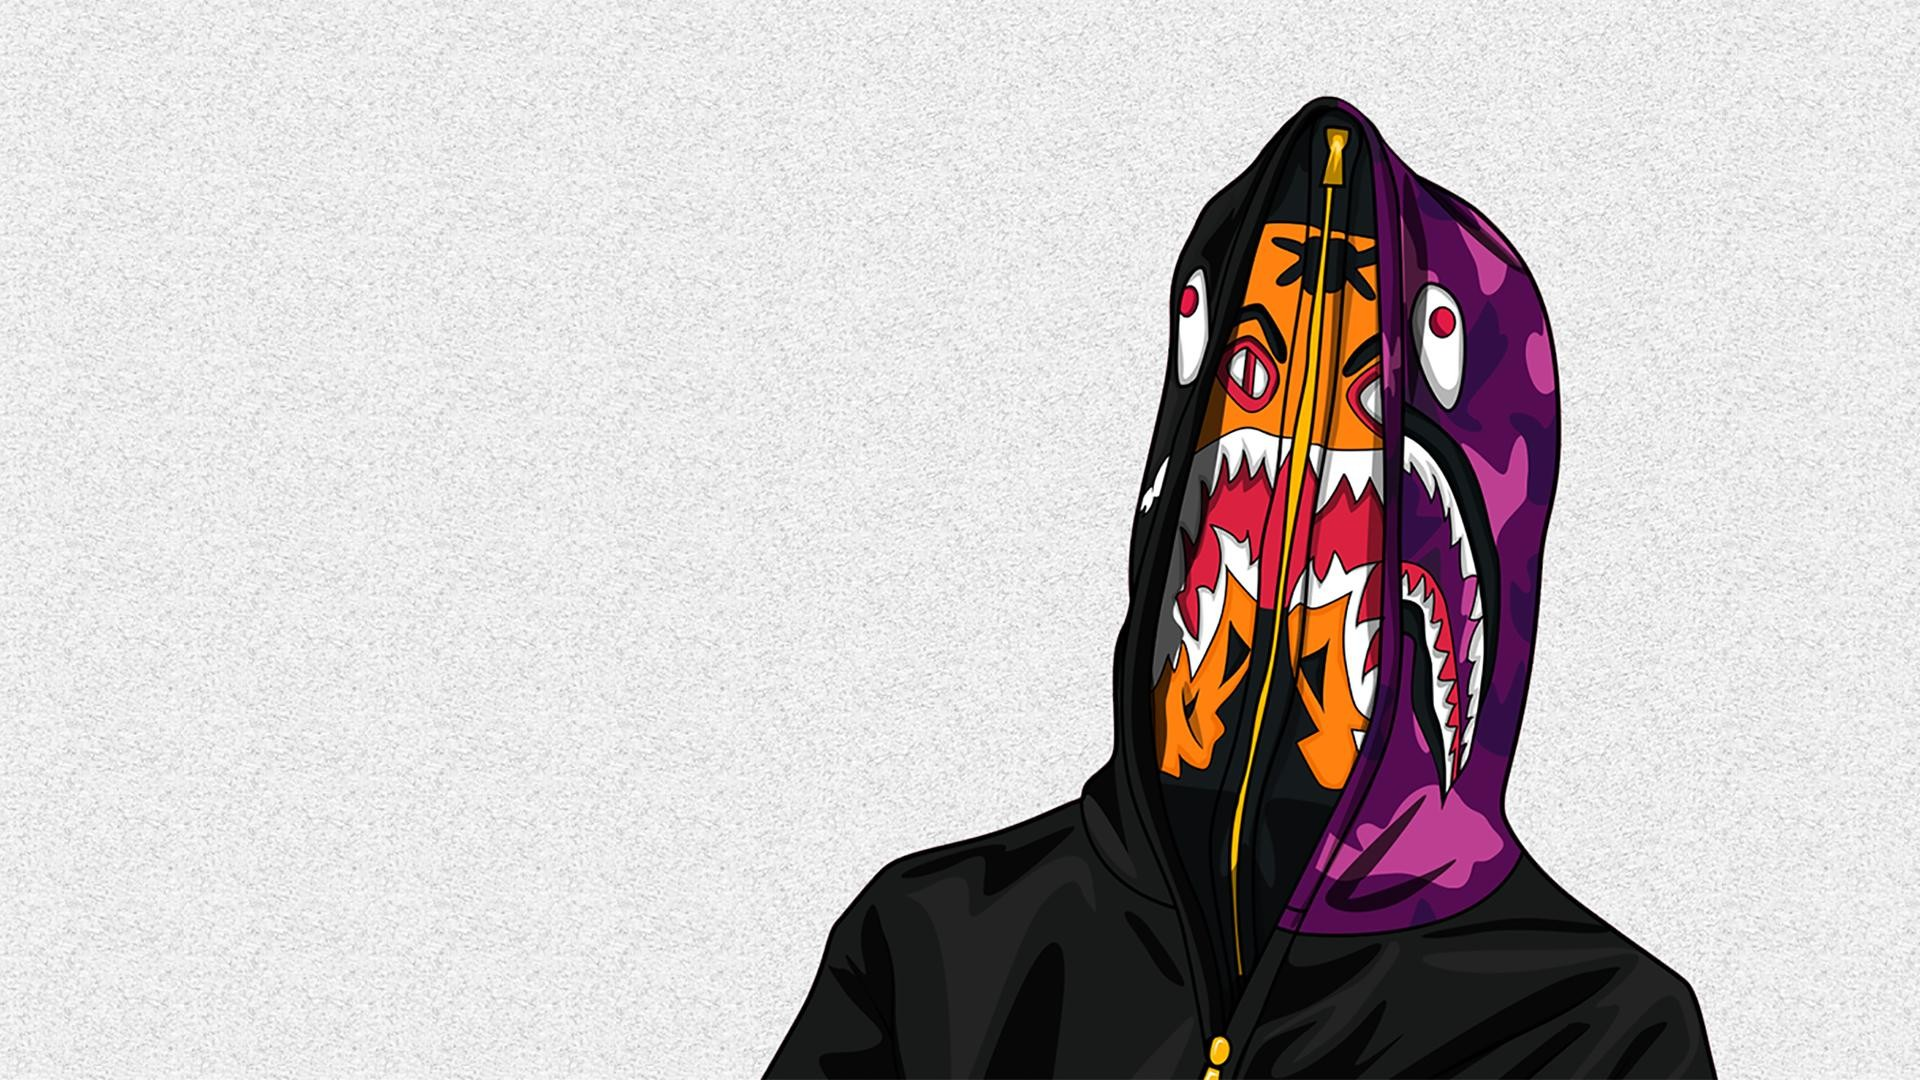 Bape Desktop Wallpaper 50 Images